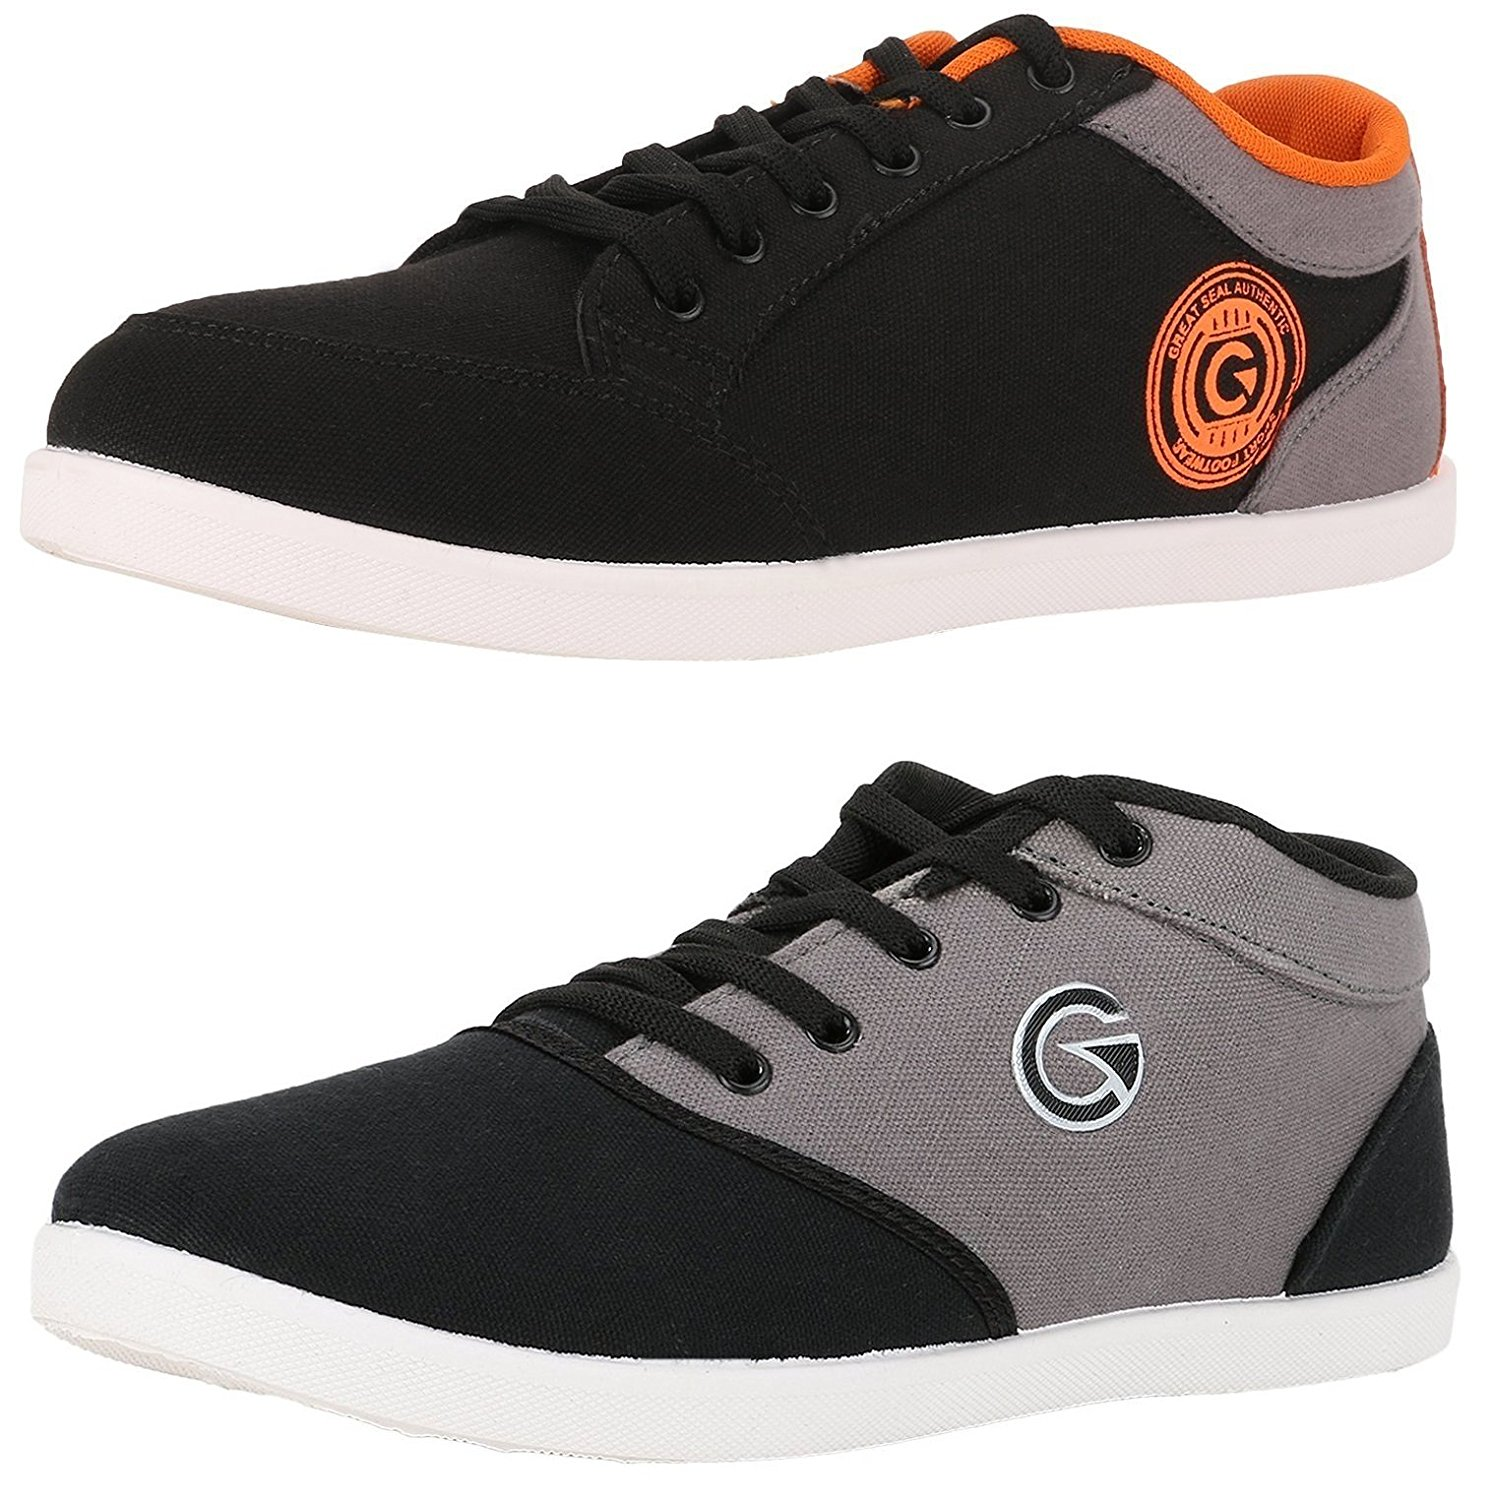 Amazon - Buy Globalite Men's Casual Shoes(Combo Of 2) for just Rs.499